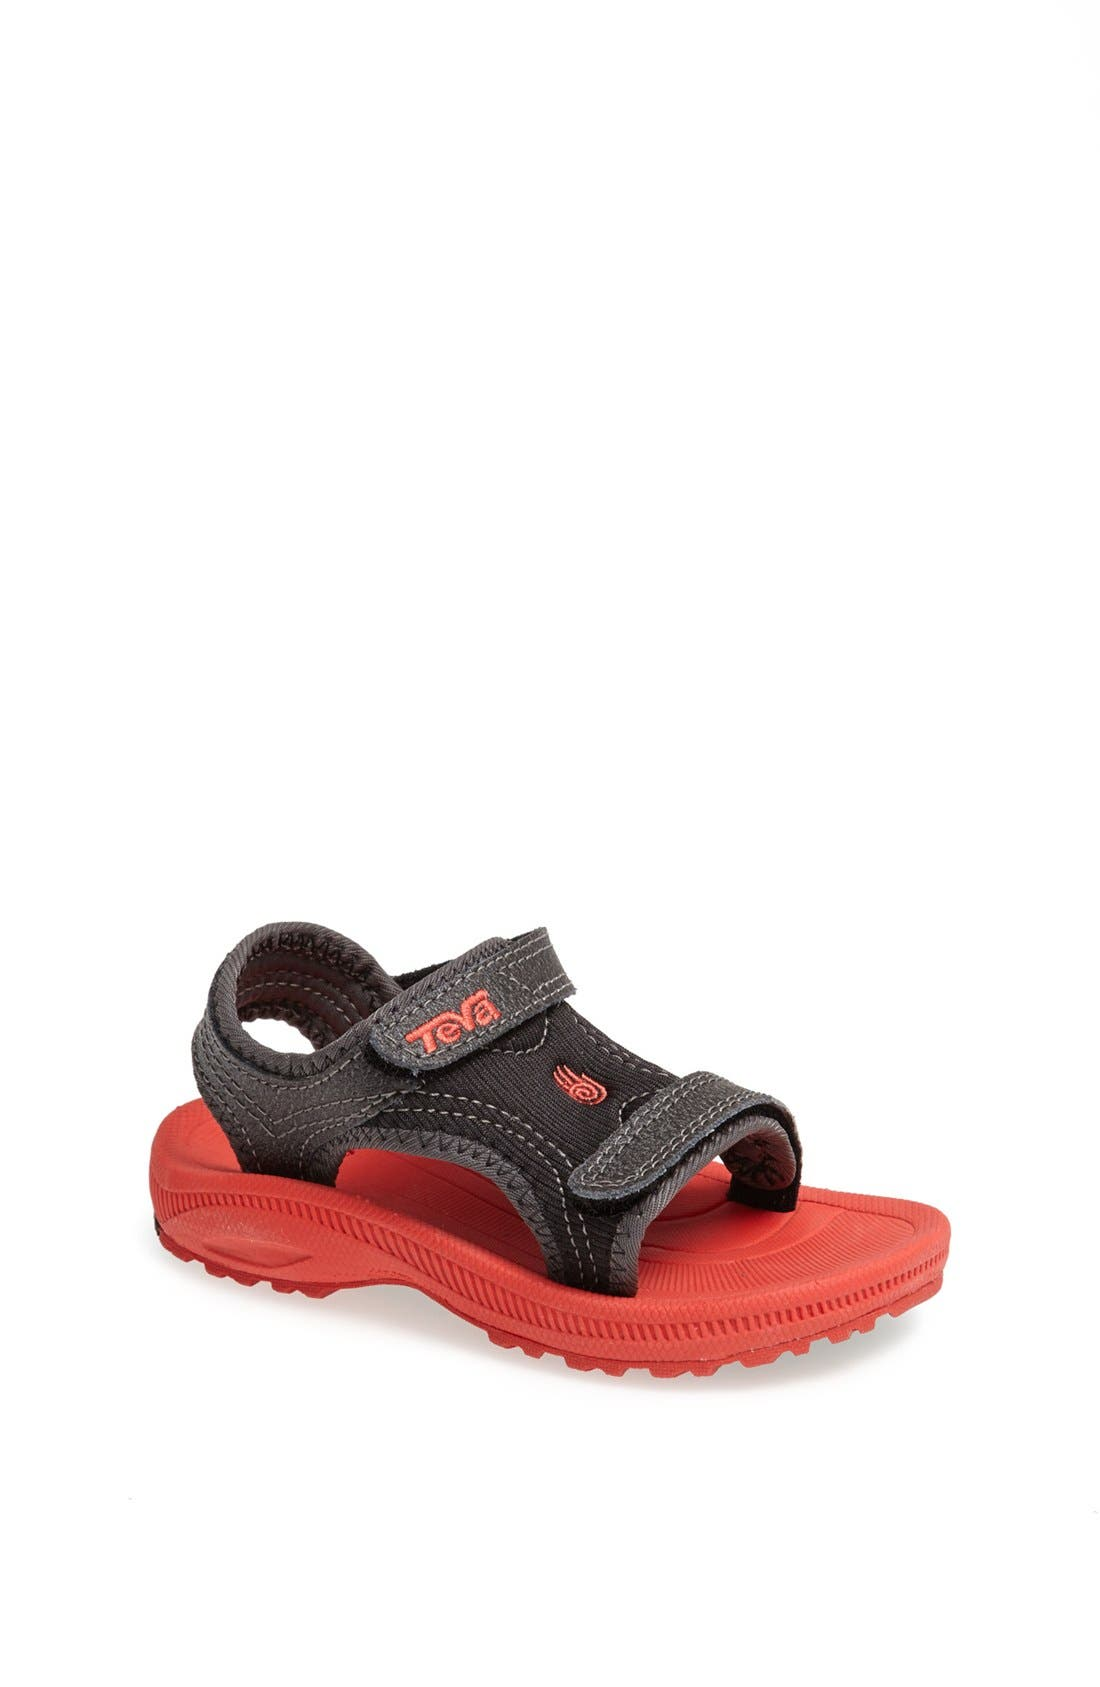 Alternate Image 1 Selected - Teva 'Psyclone 3' Sandal (Baby, Walker, Toddler & Little Kid)